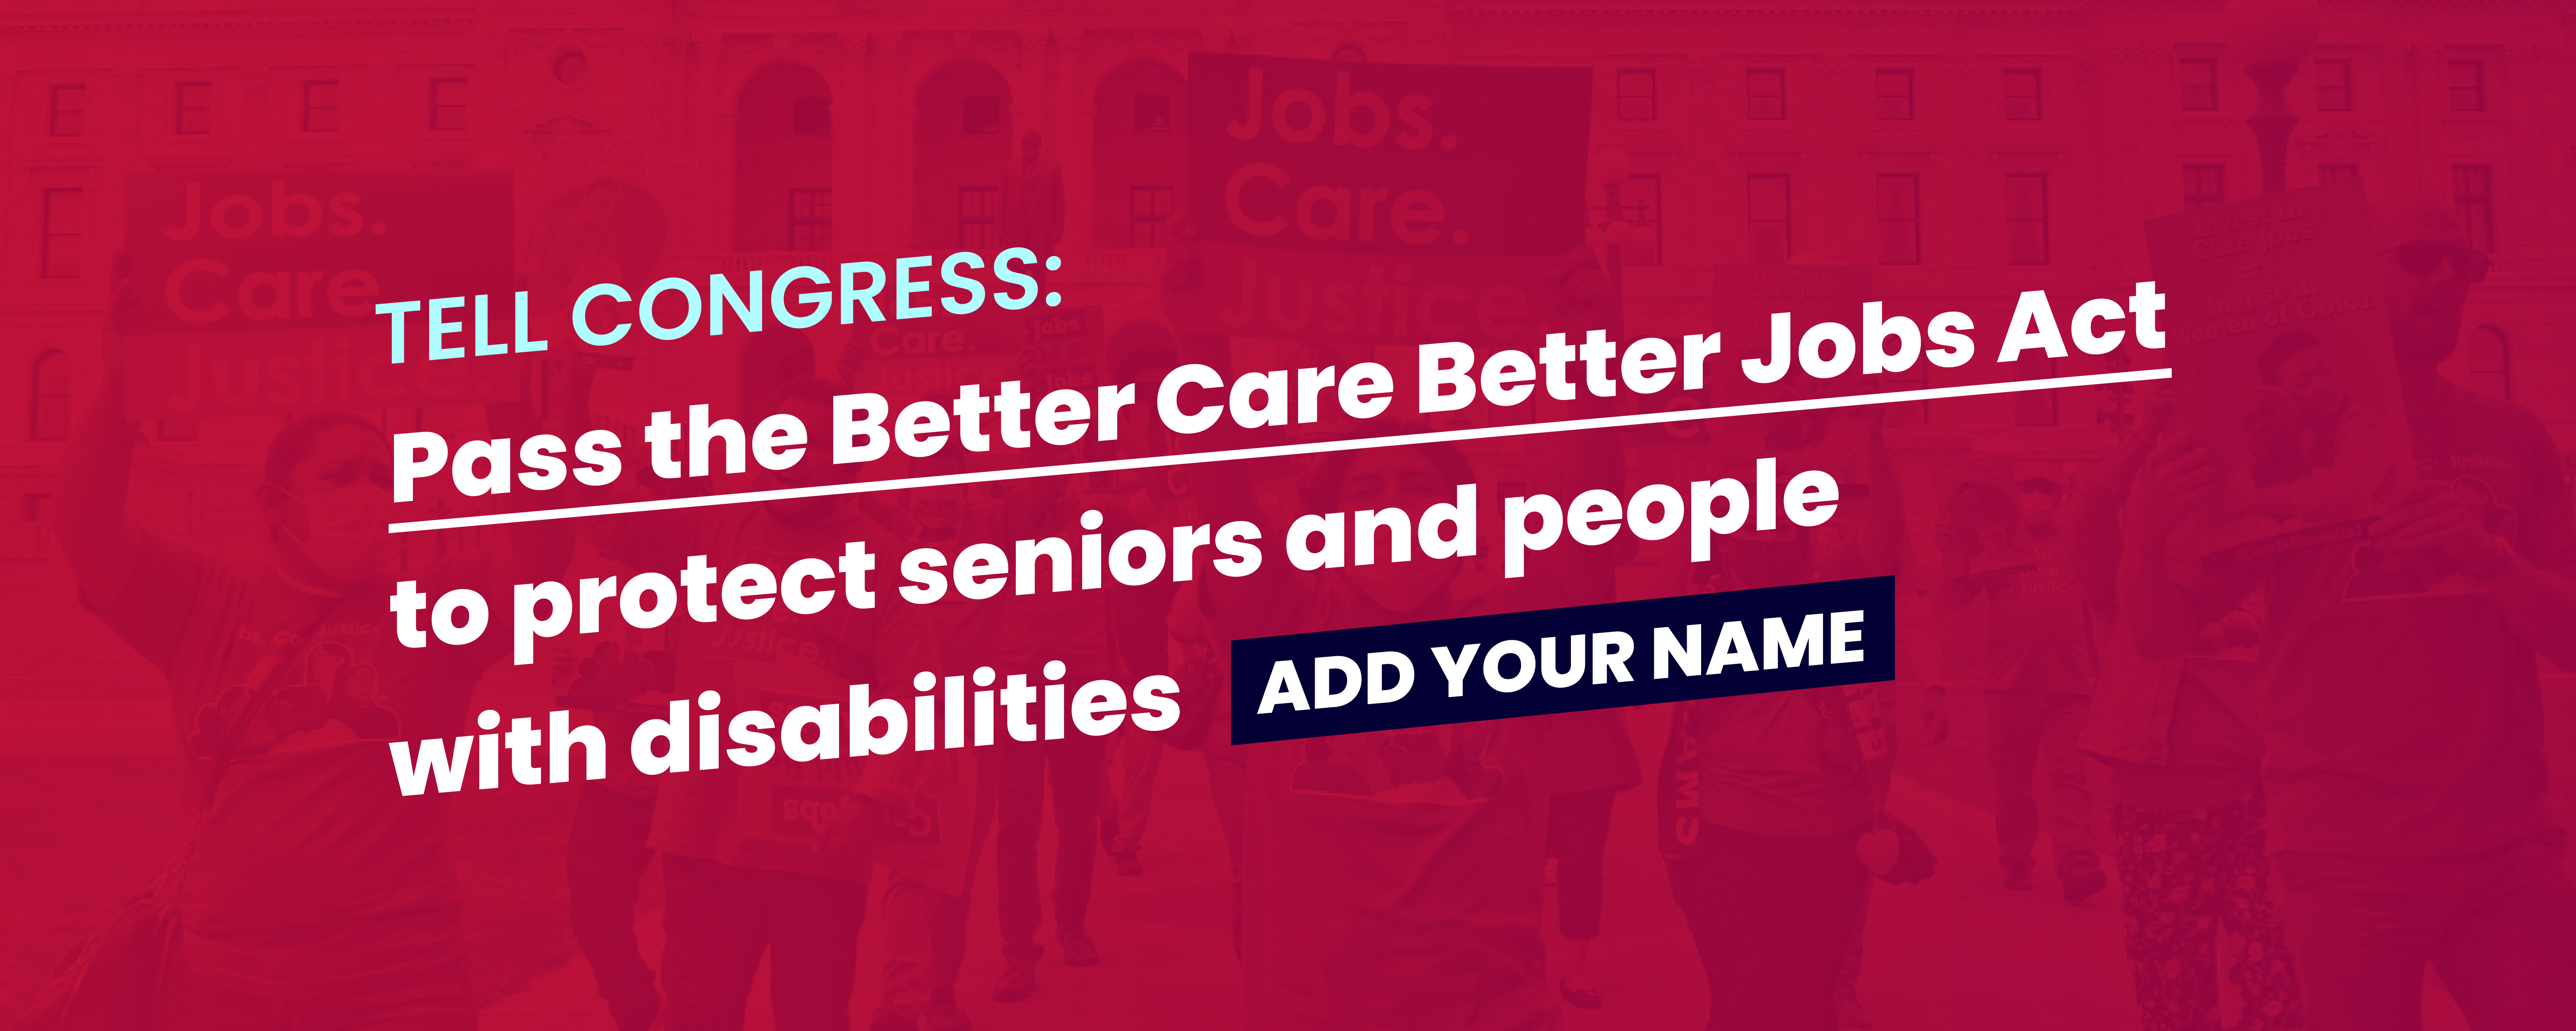 """Banner image with bright red background reads, """"Tell Congress: Pass the Better Care Better Jobs Act to protect seniors and people with disabilities. Add your name"""